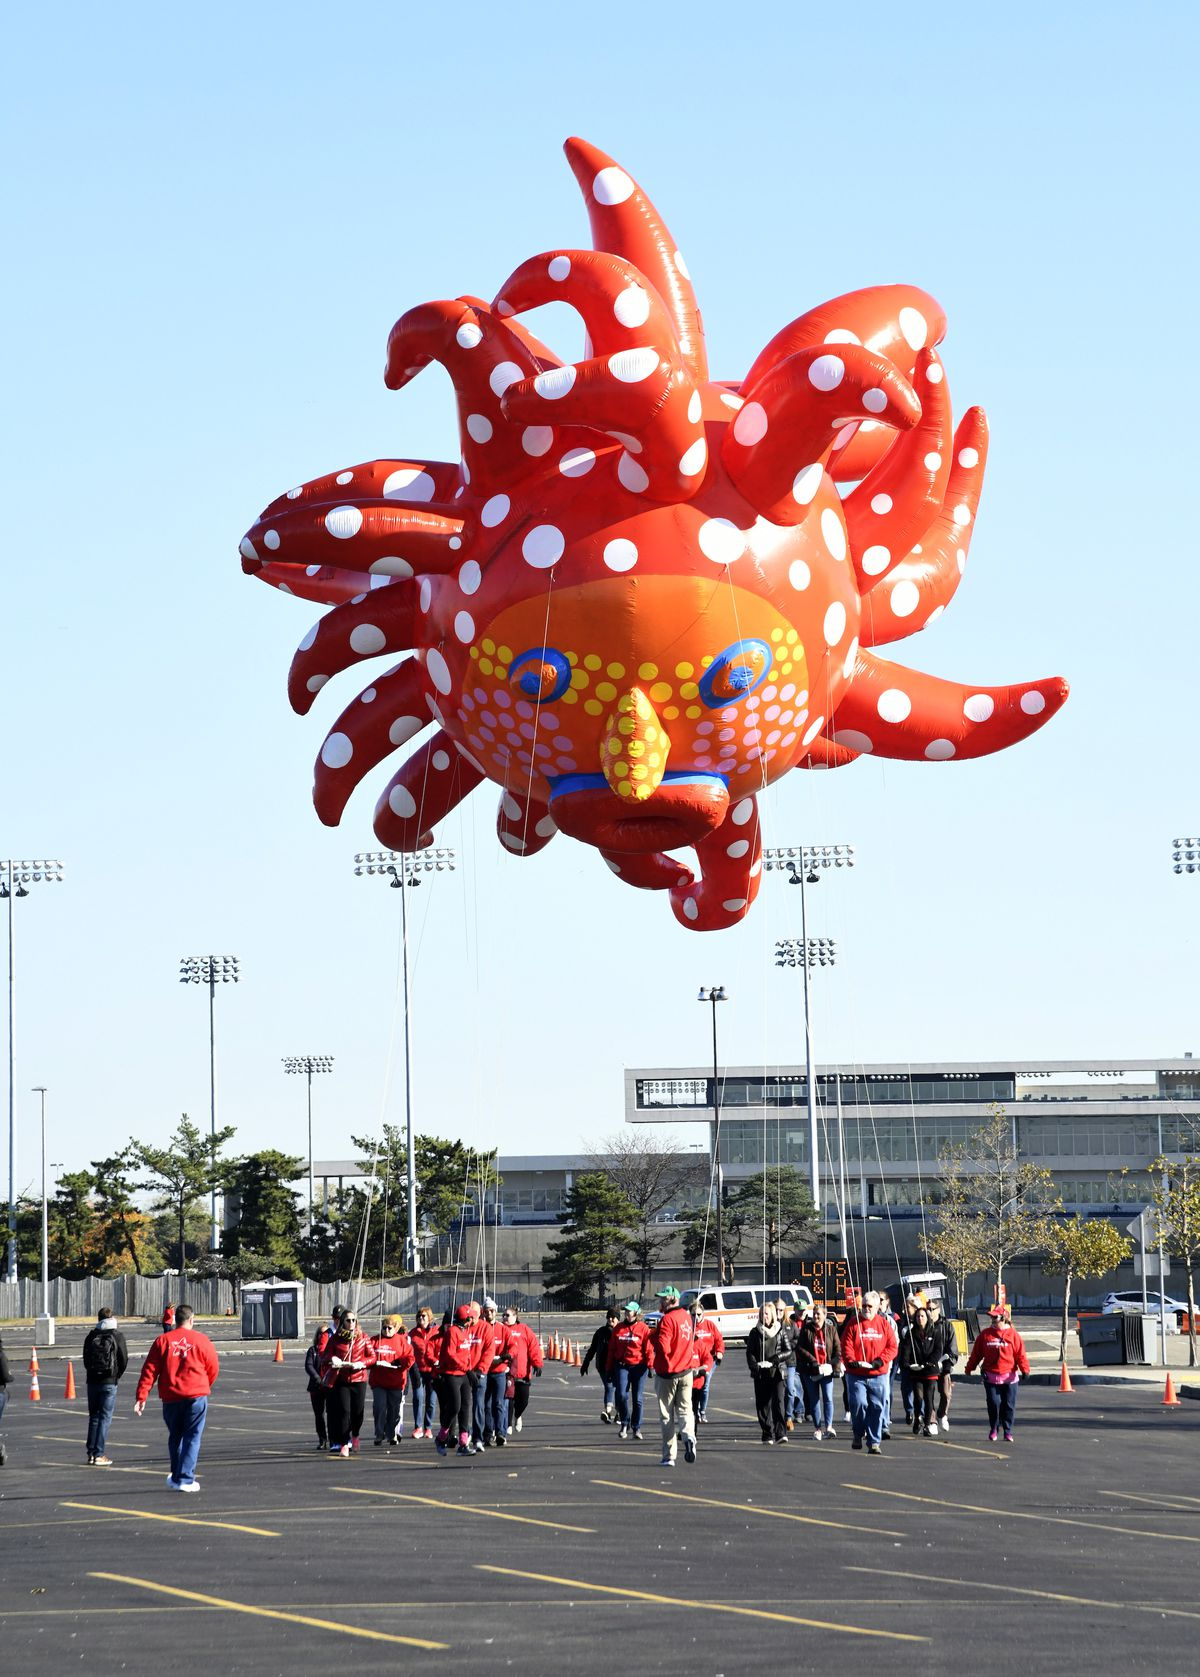 Love Flies up to the Sky by Yayoi Kusama is seen as Macy's unveils new giant character balloons for the 93rd annual Macy's Thanksgiving Day Parade